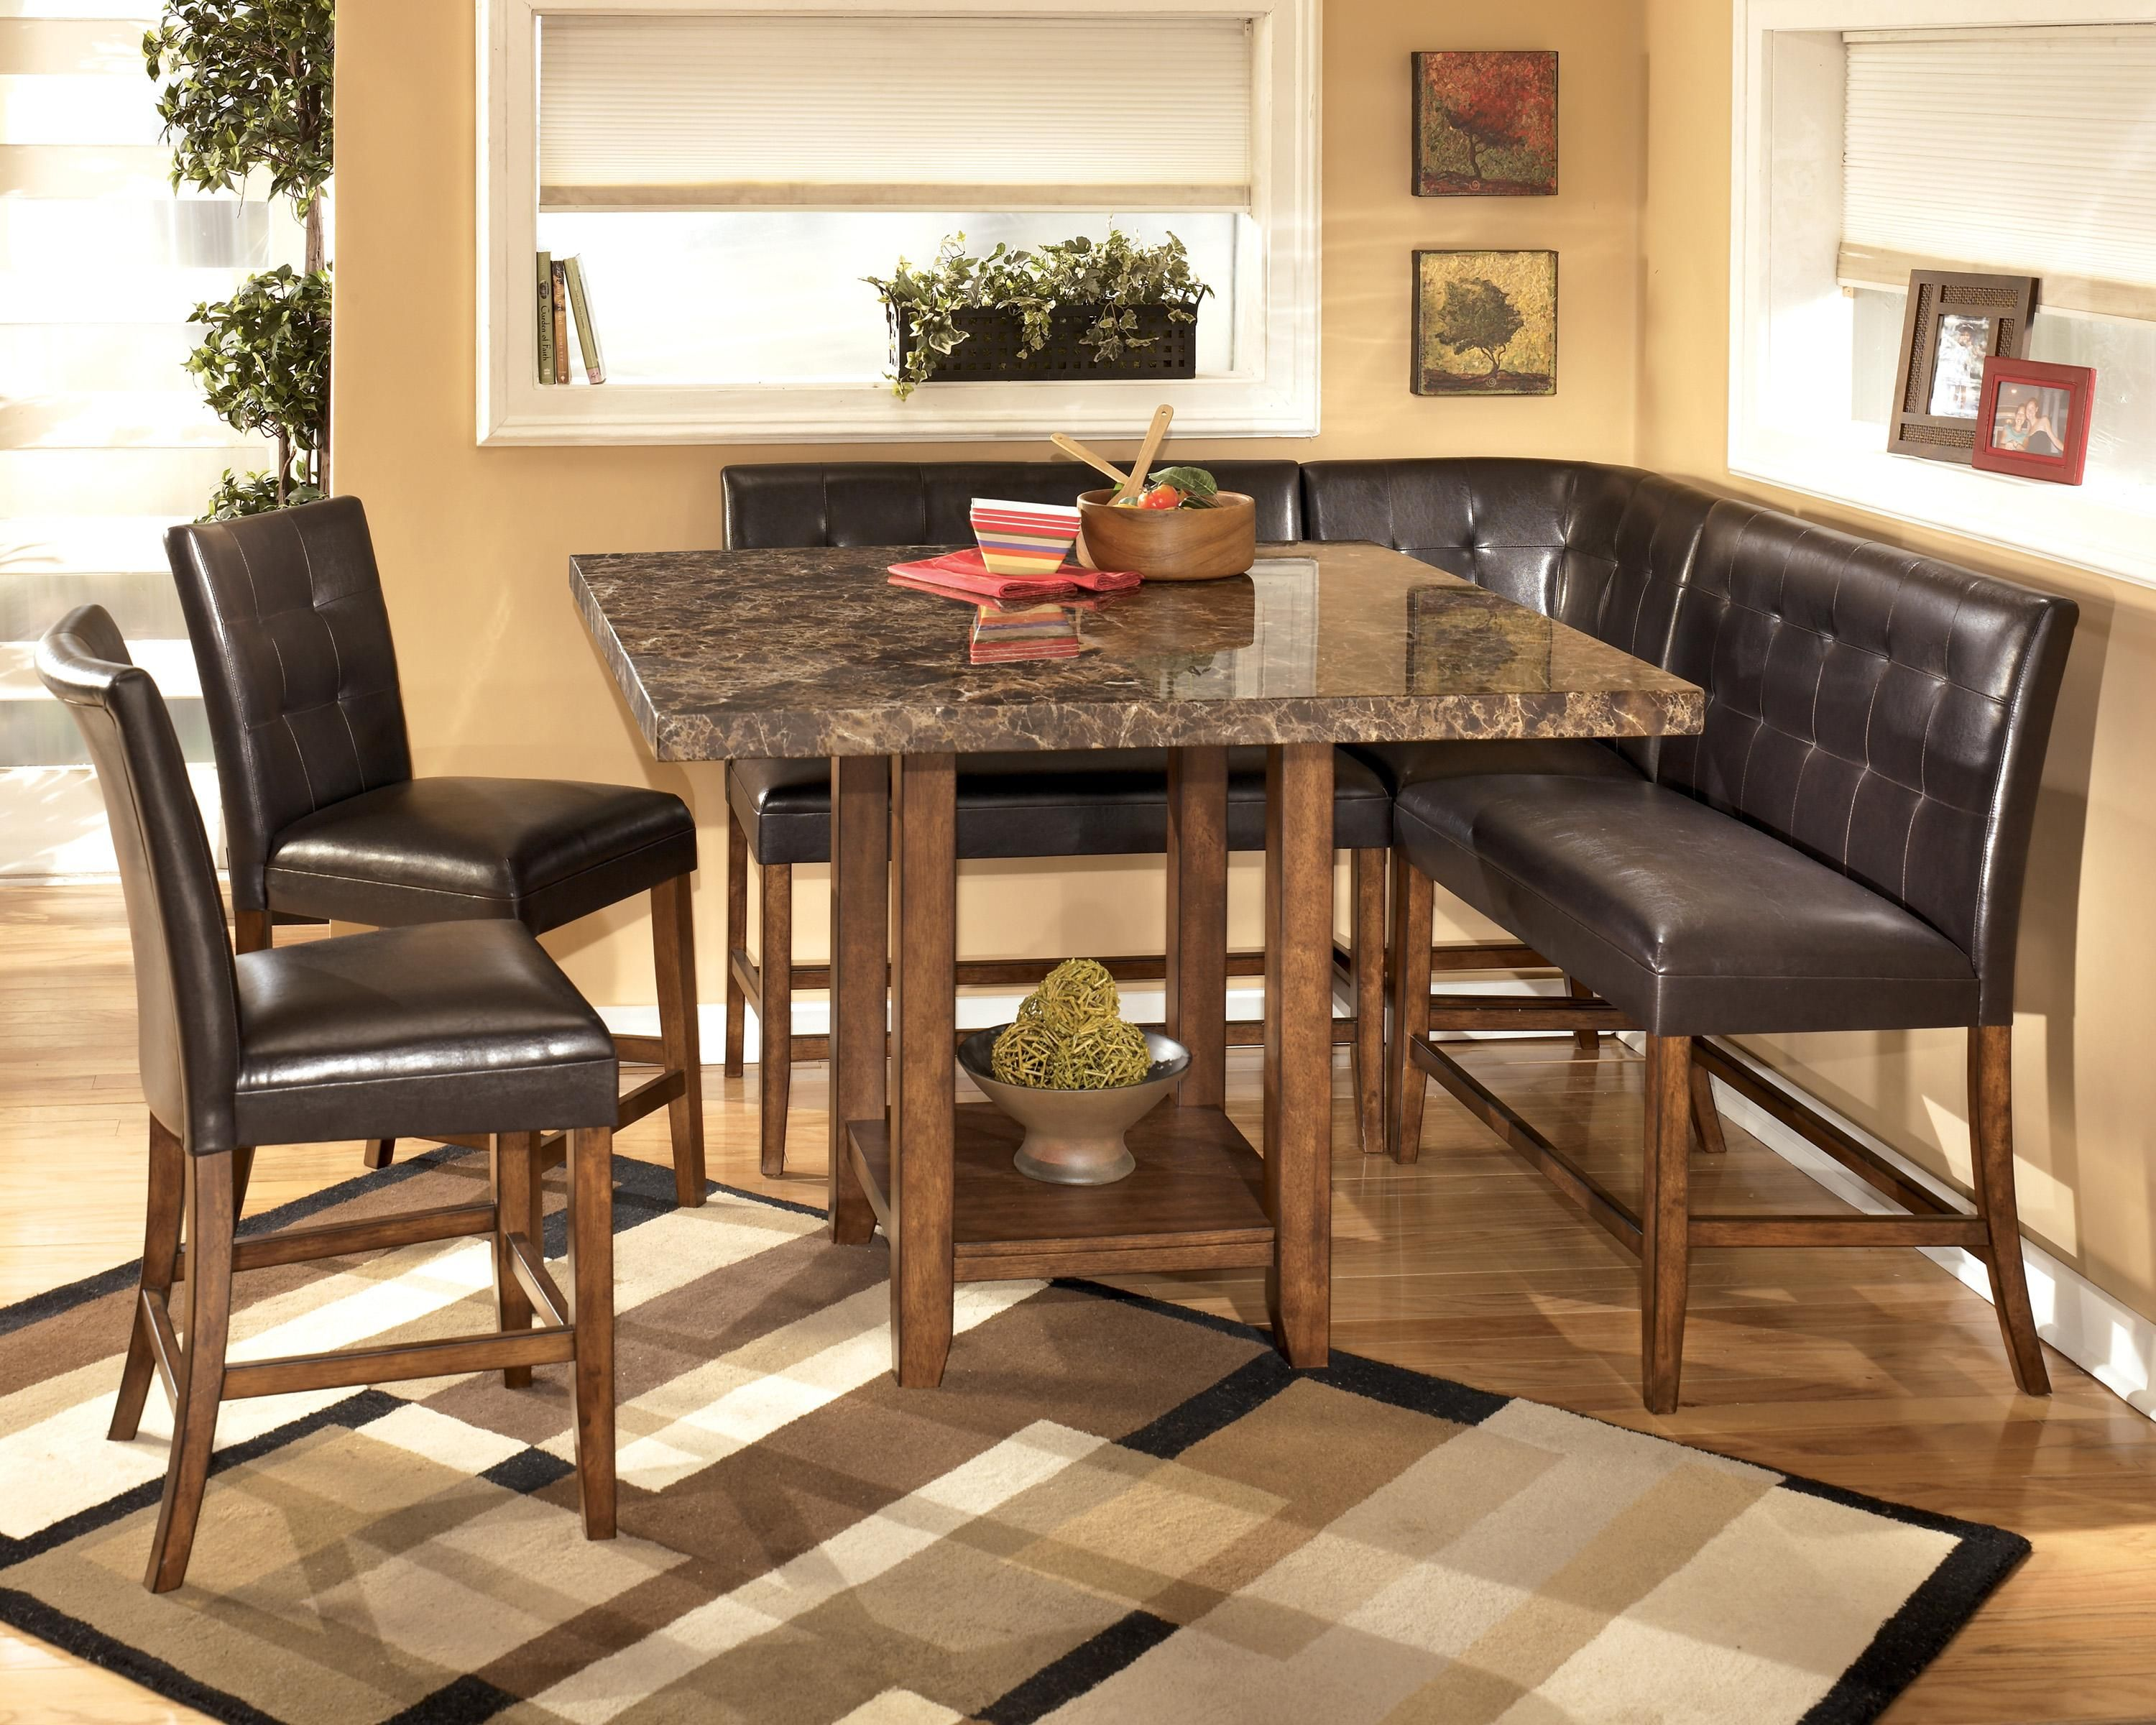 counter height kitchen tables Lacey Corner Counter Height Dining Room Set by Signature Design in Casual Dining Sets The rich contemporary design of the Lacey dining room collection